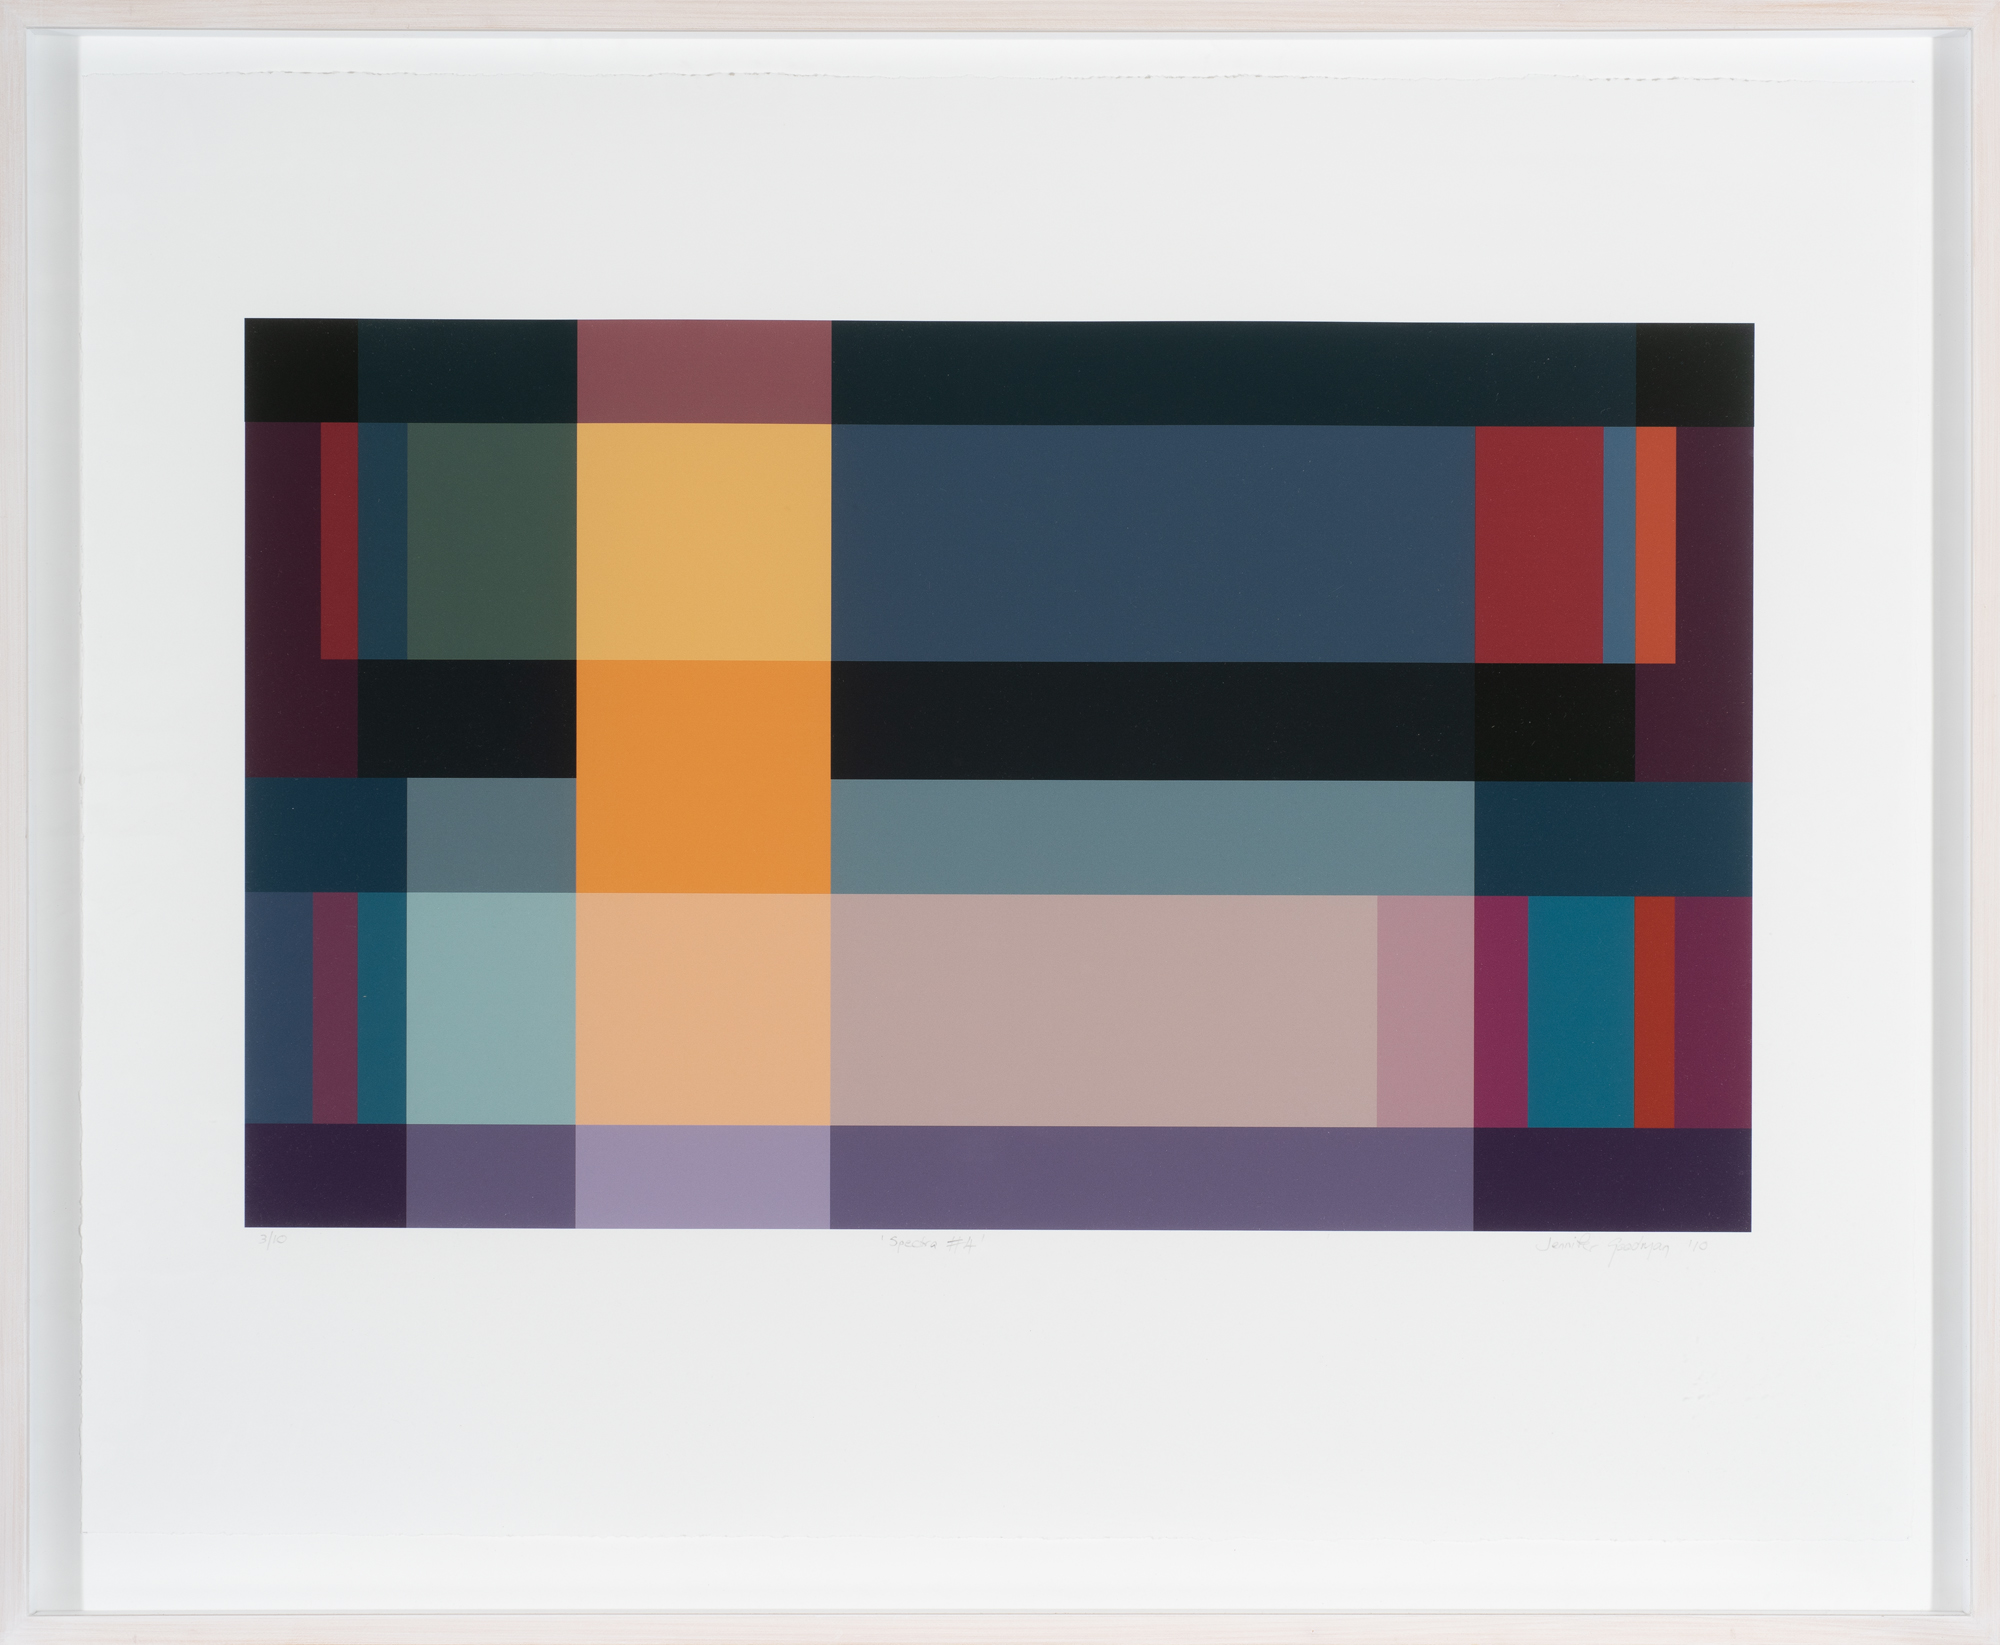 Jennifer Goodman, Spectra 4, 2010, pigment print on cotton rag, 35x58cm